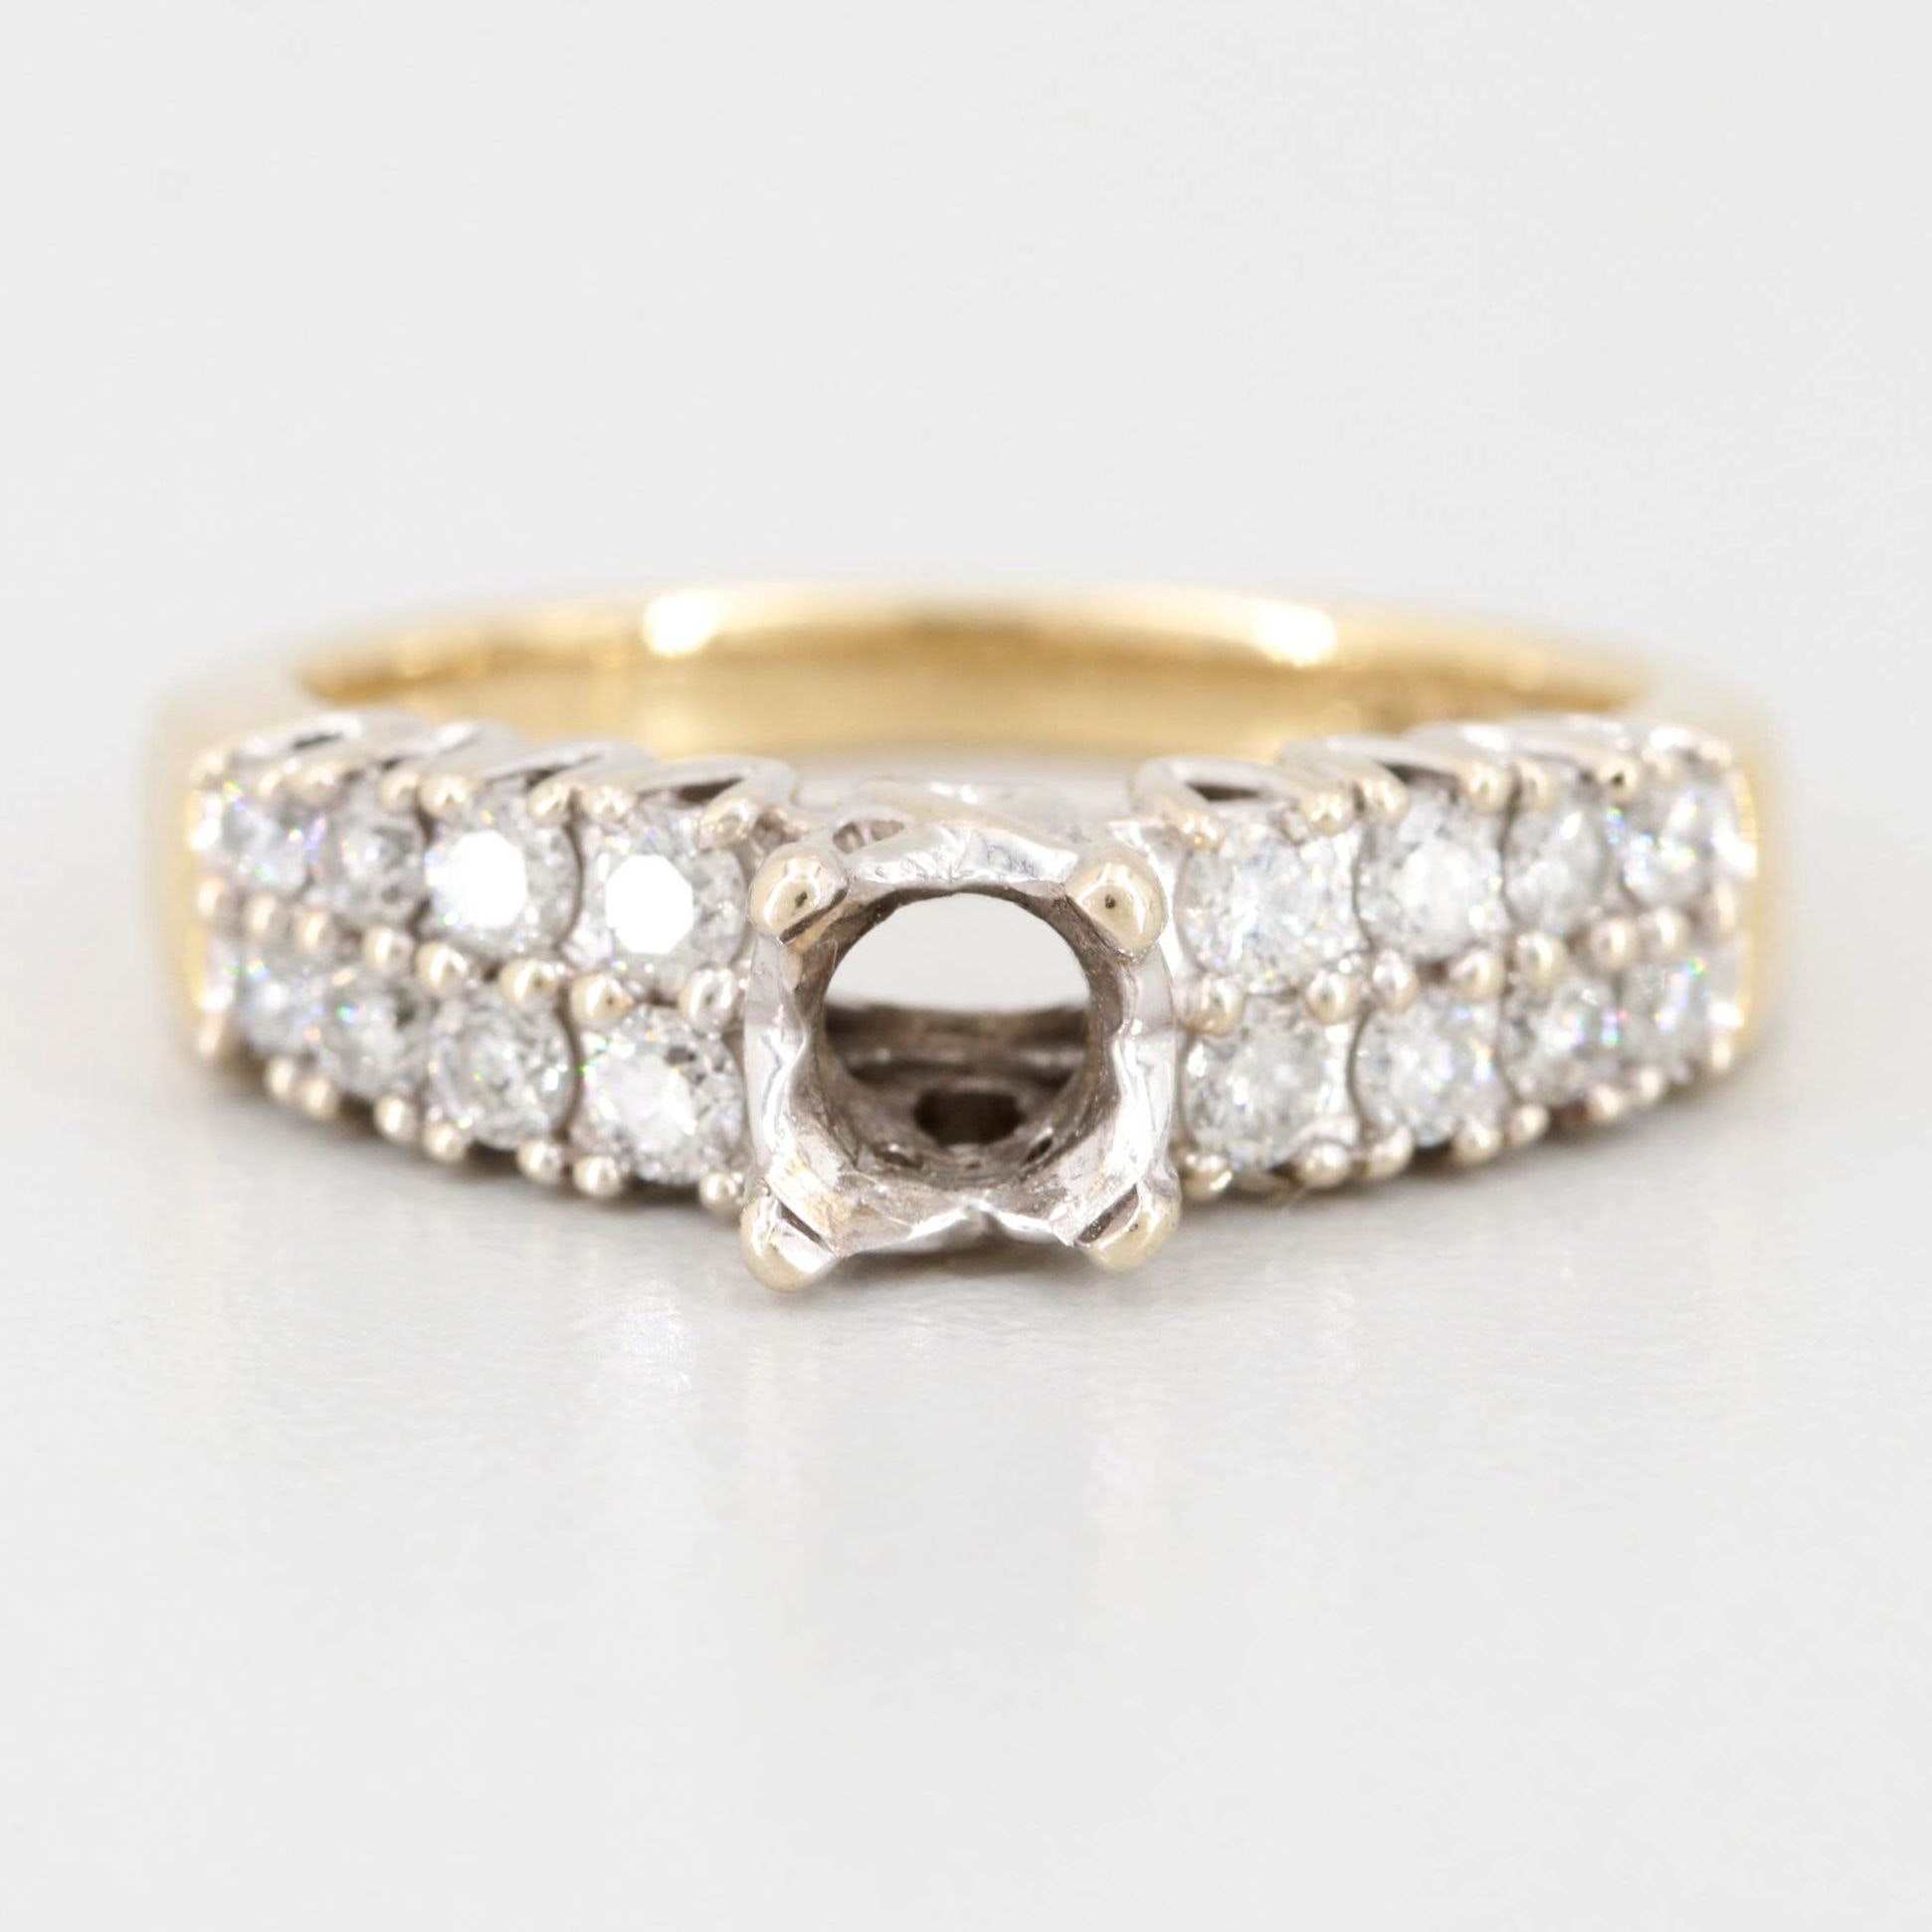 14K Yellow Gold Semi-Mount Diamond Ring with White Gold Accents